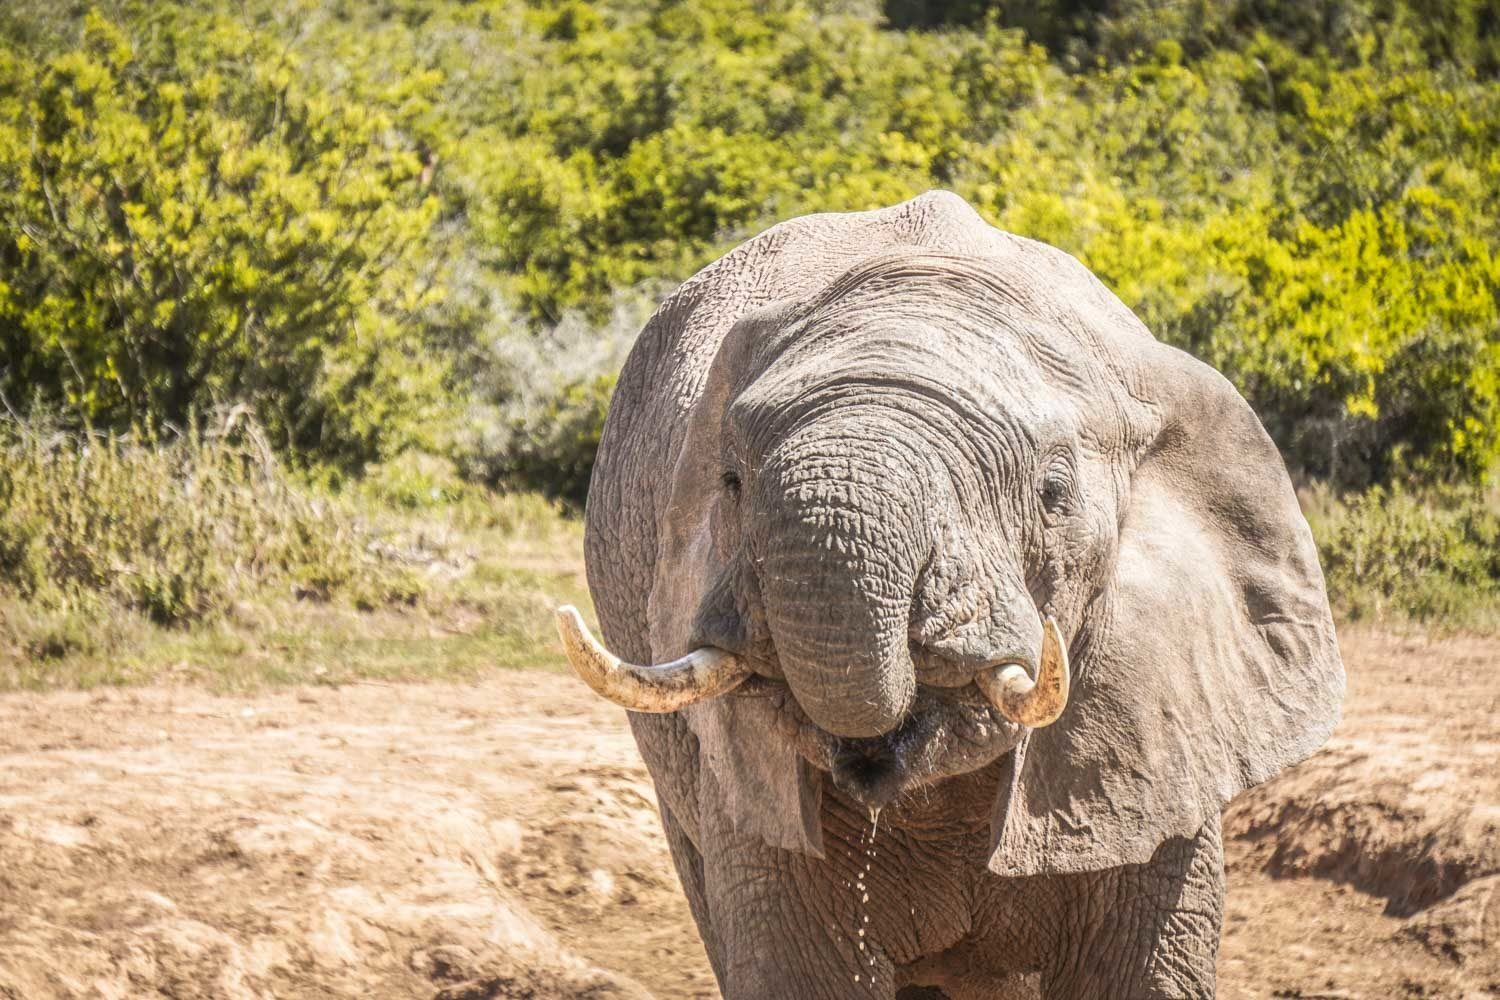 Elephant drinking water at Addo Game Reserve